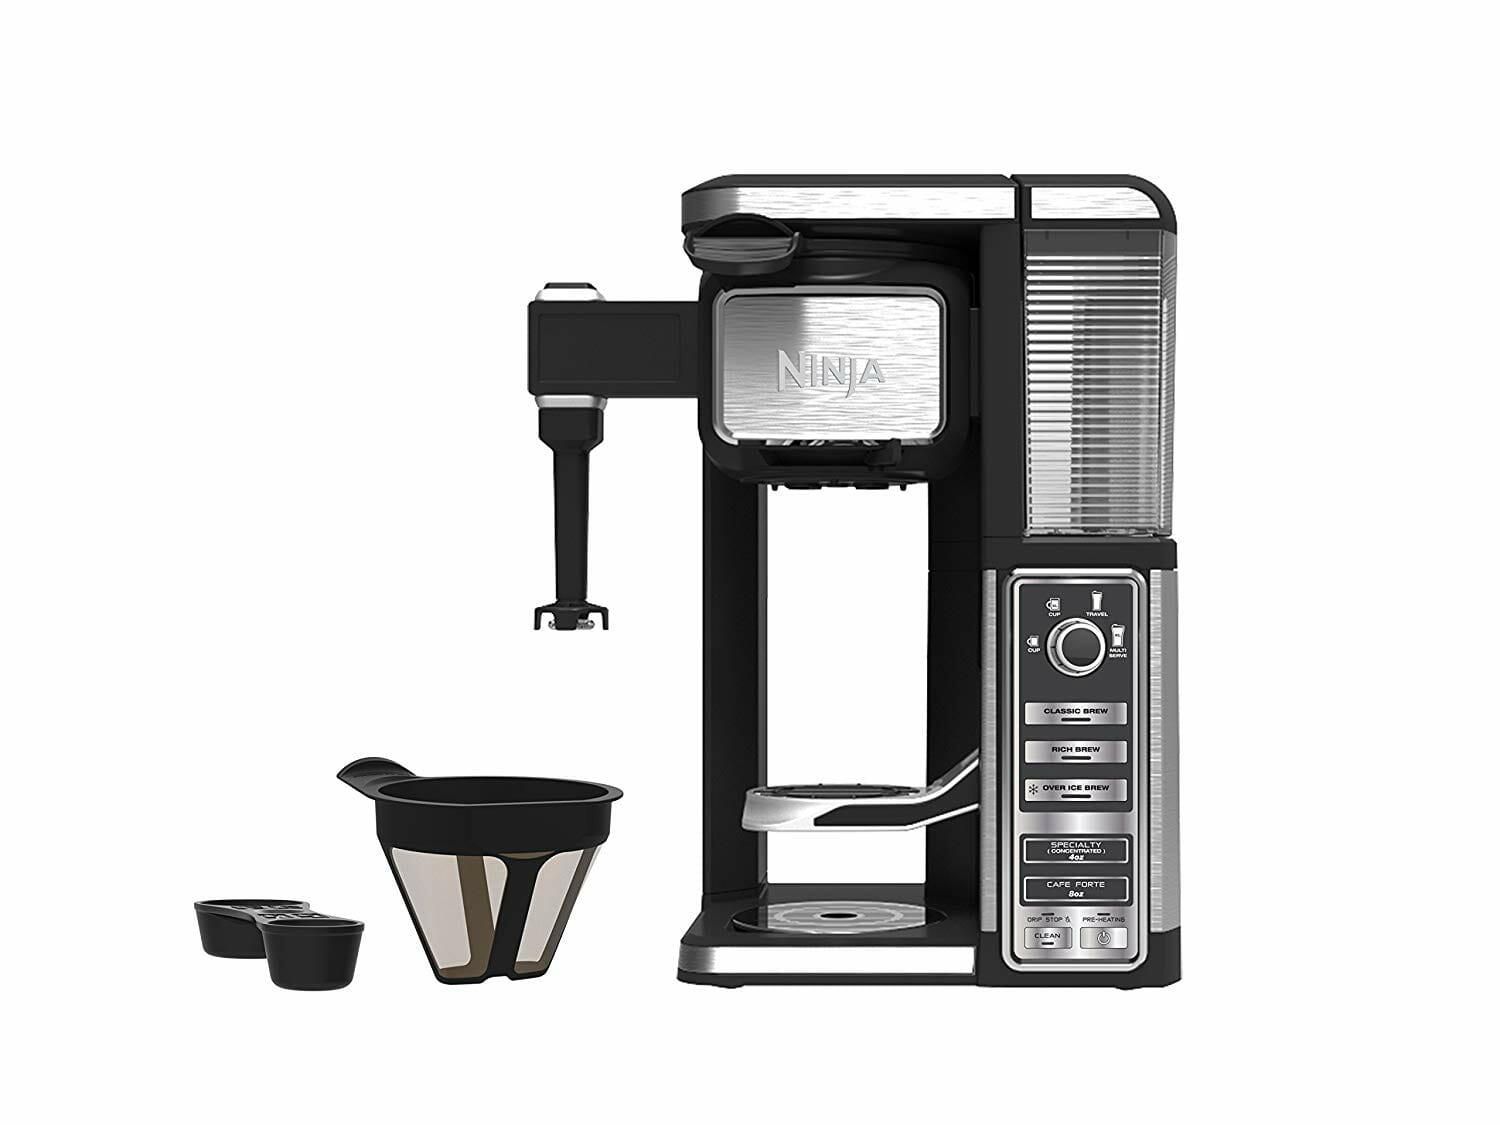 built in hot milk frother for making cappucino